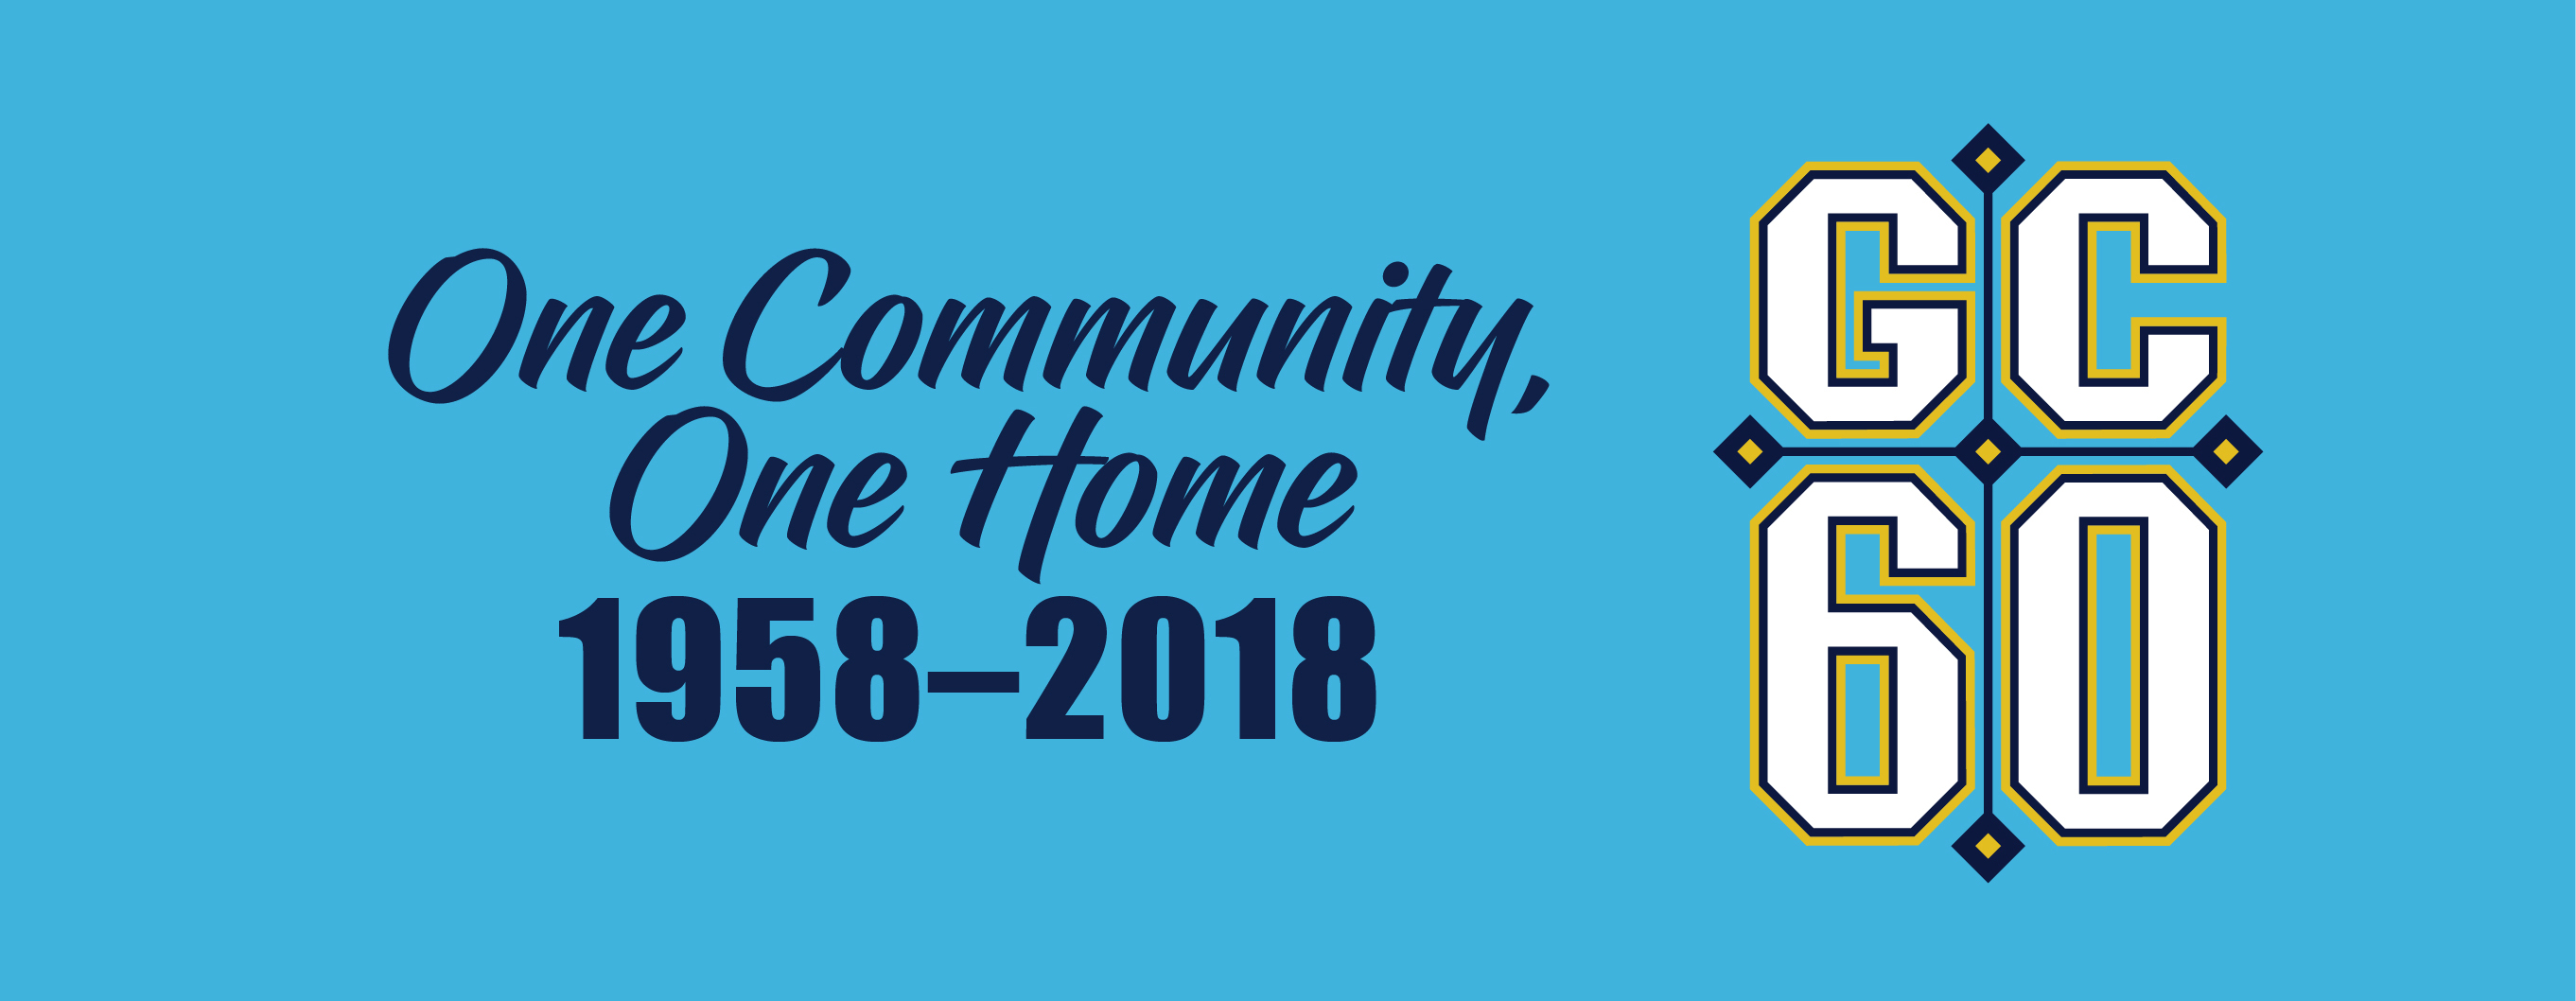 One Community One Home graphic